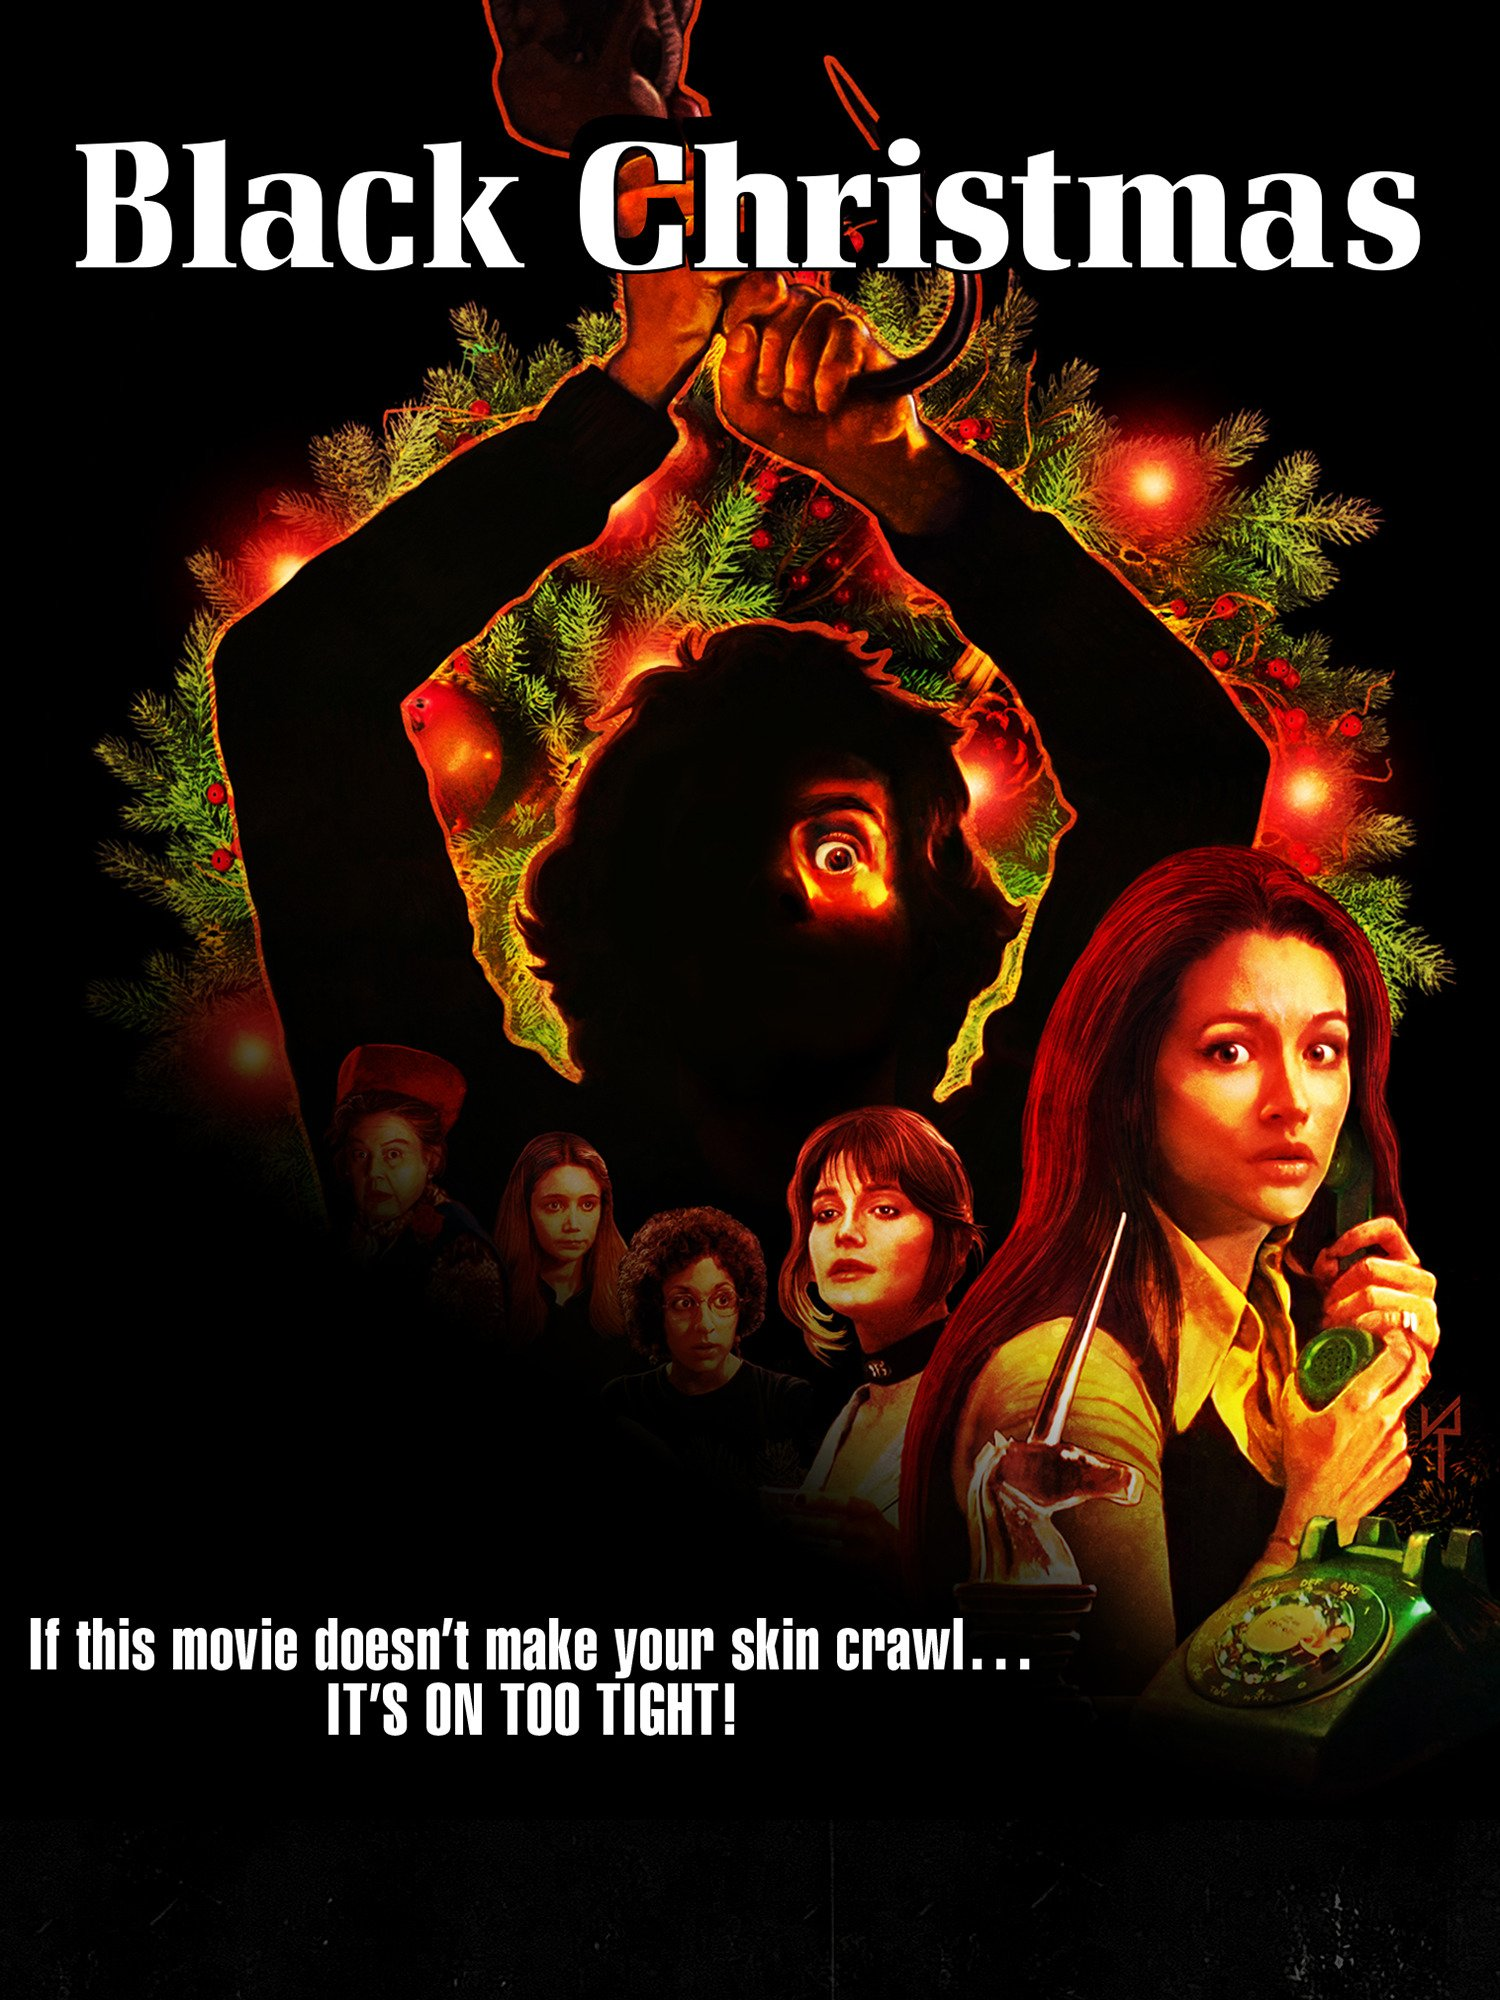 amazoncom black christmas olivia hussey keir dullea margot kidder bob clark - Black Christmas Movie